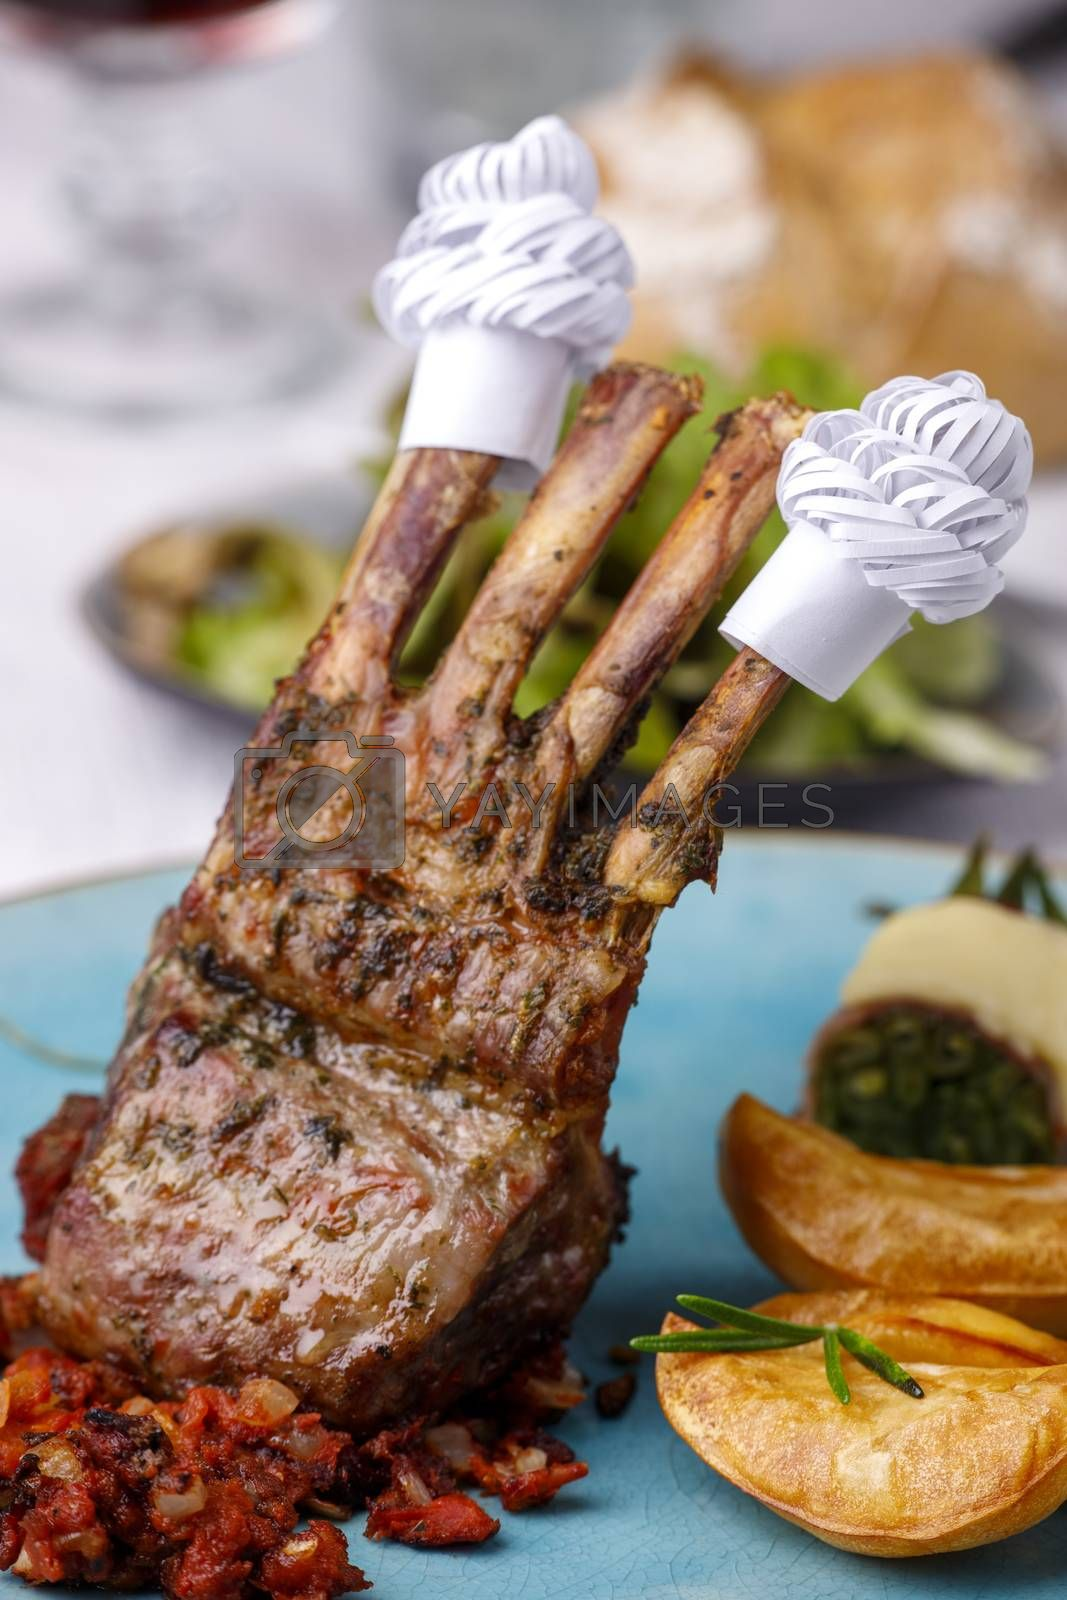 lamb ribs with frills and salad